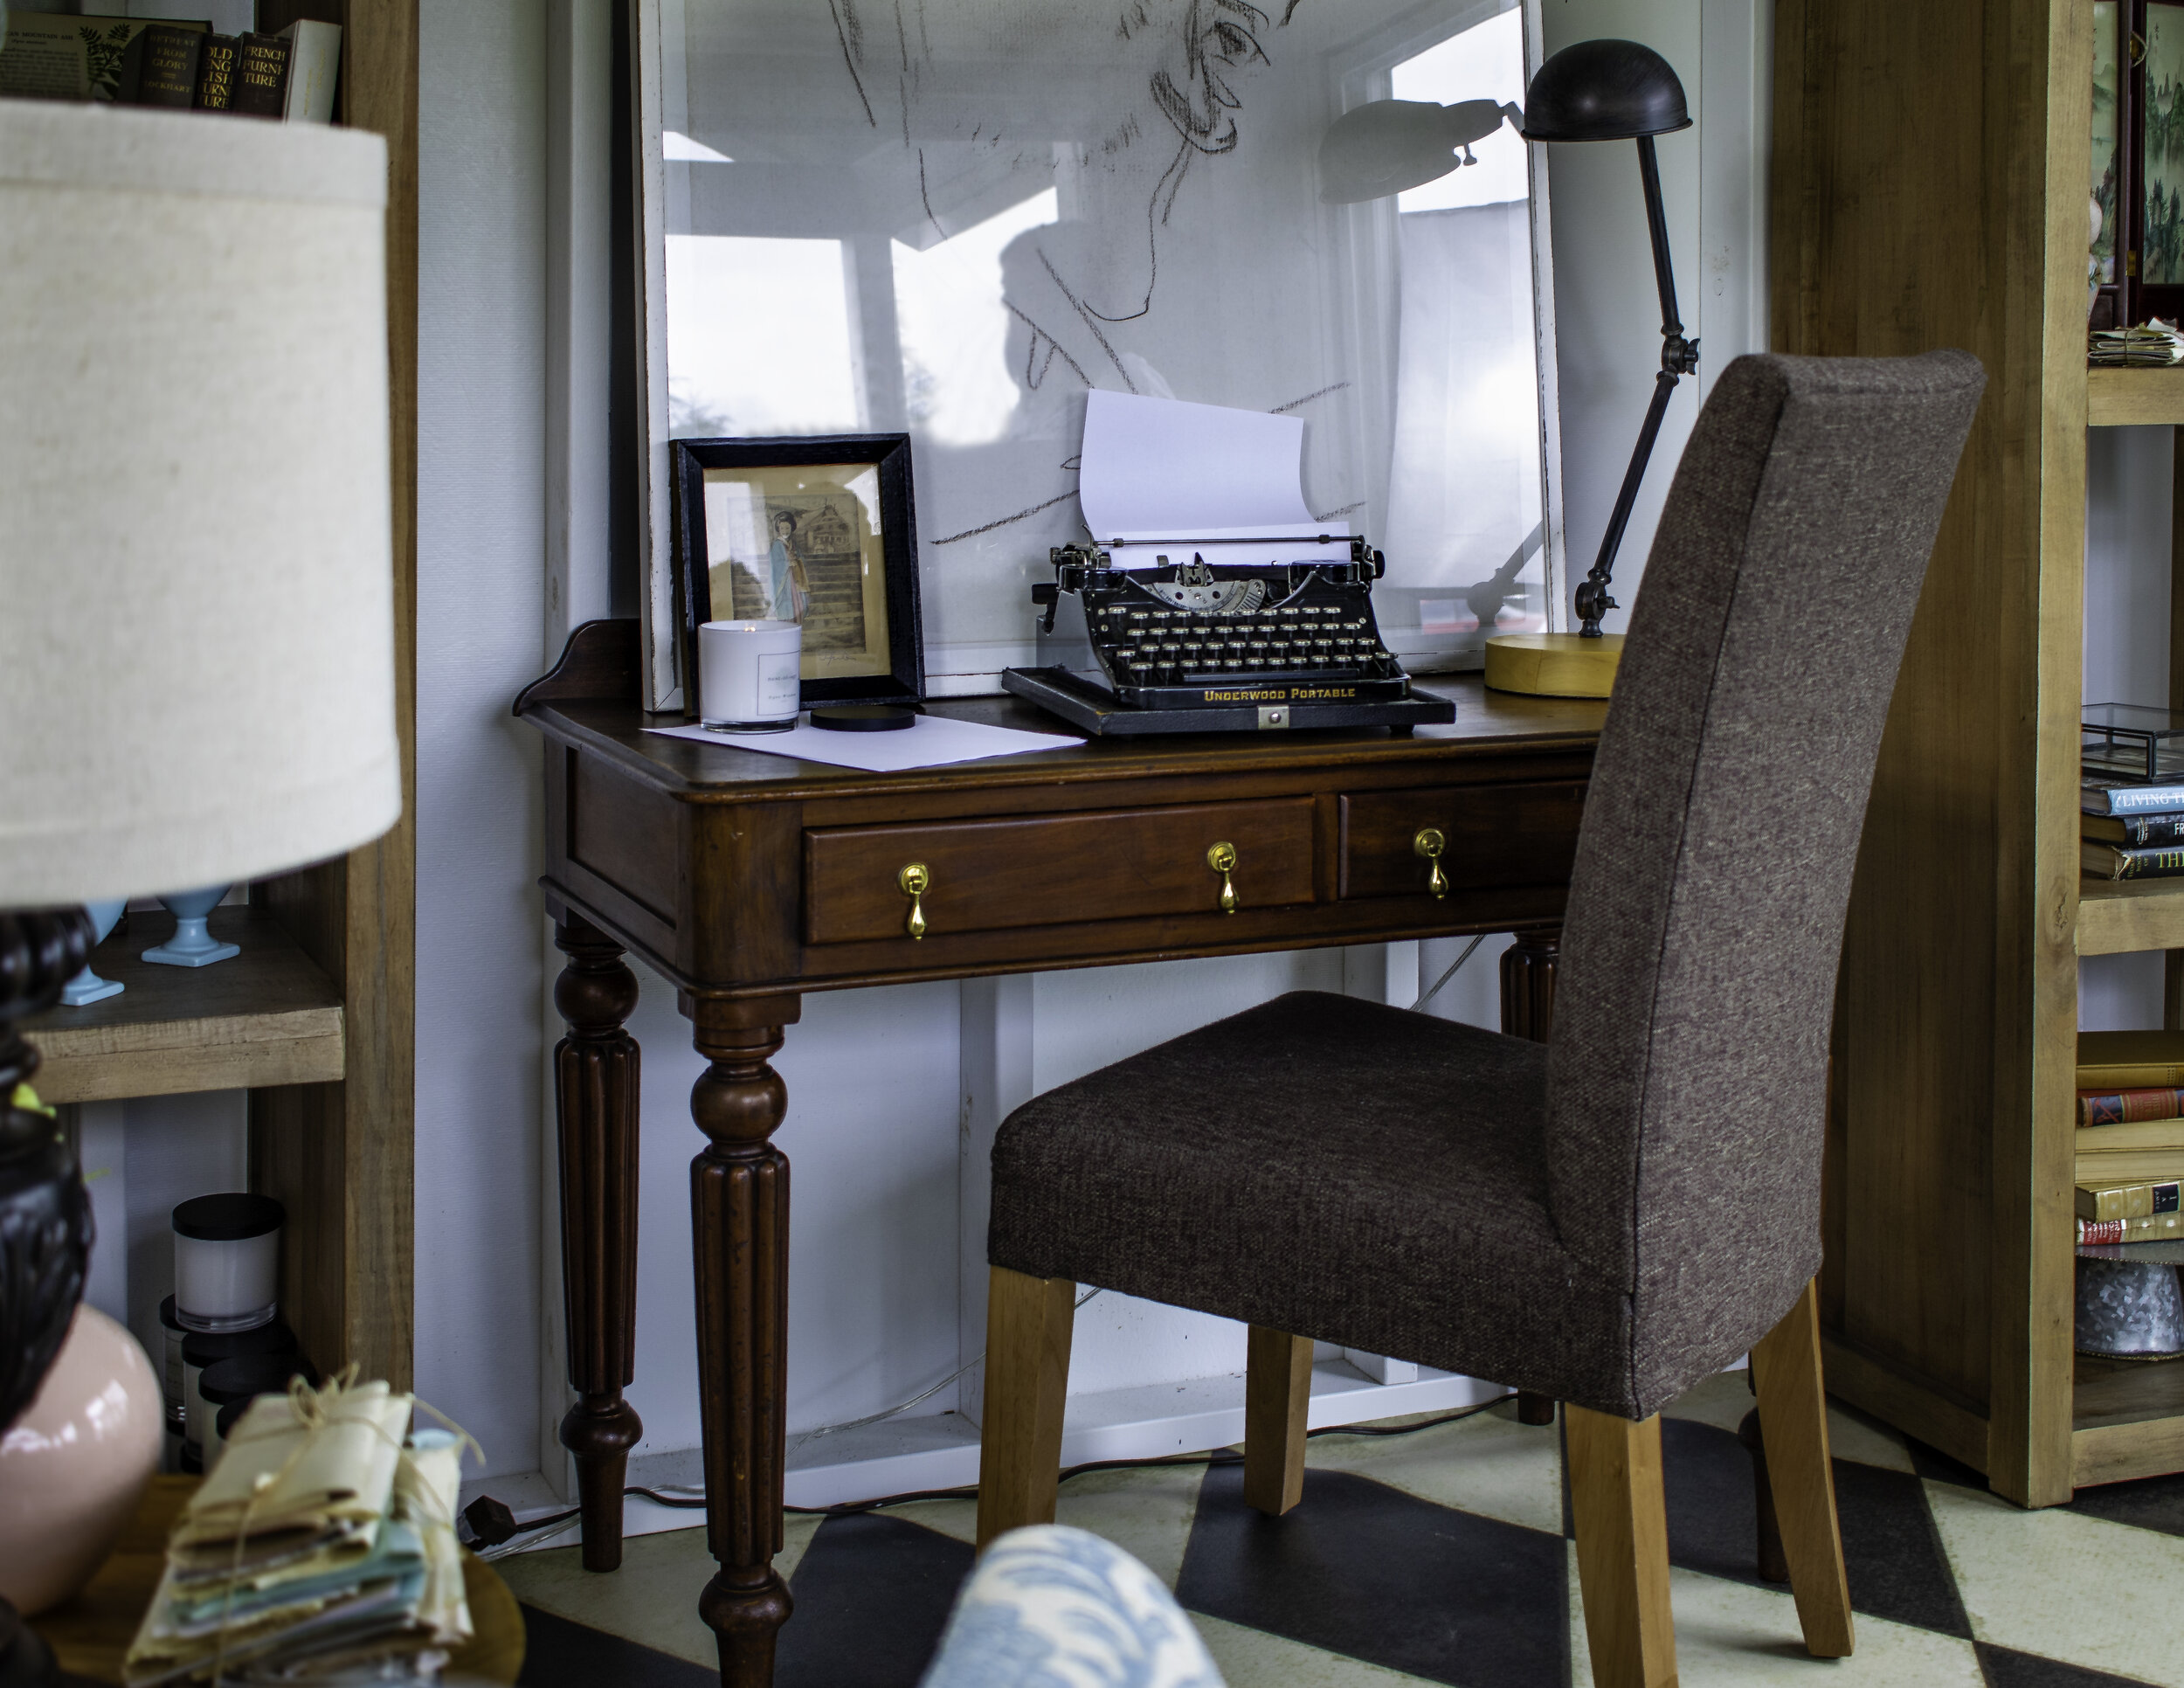 An antique writer's desk fits perfectly on the back wall of the she shed.